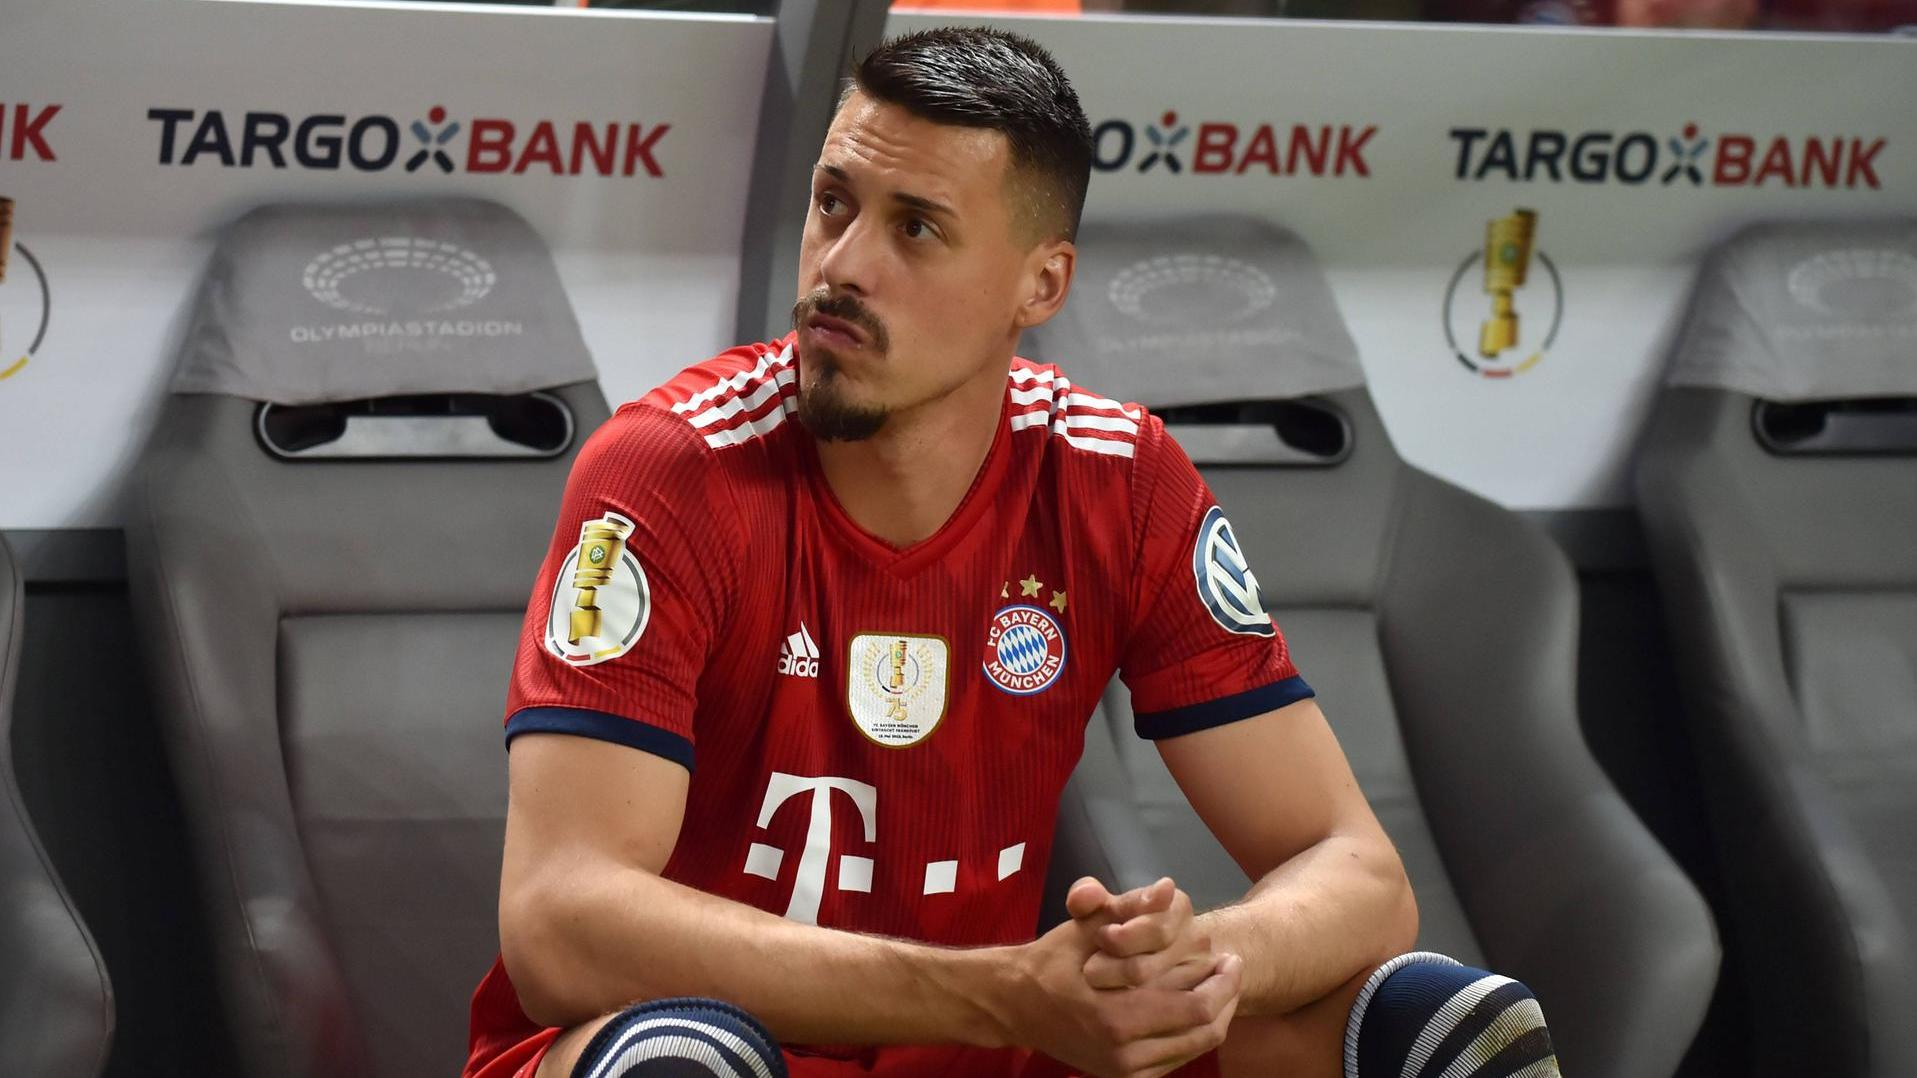 frankfurt boss hellmann stichelt gegen bayerns sandro wagner. Black Bedroom Furniture Sets. Home Design Ideas